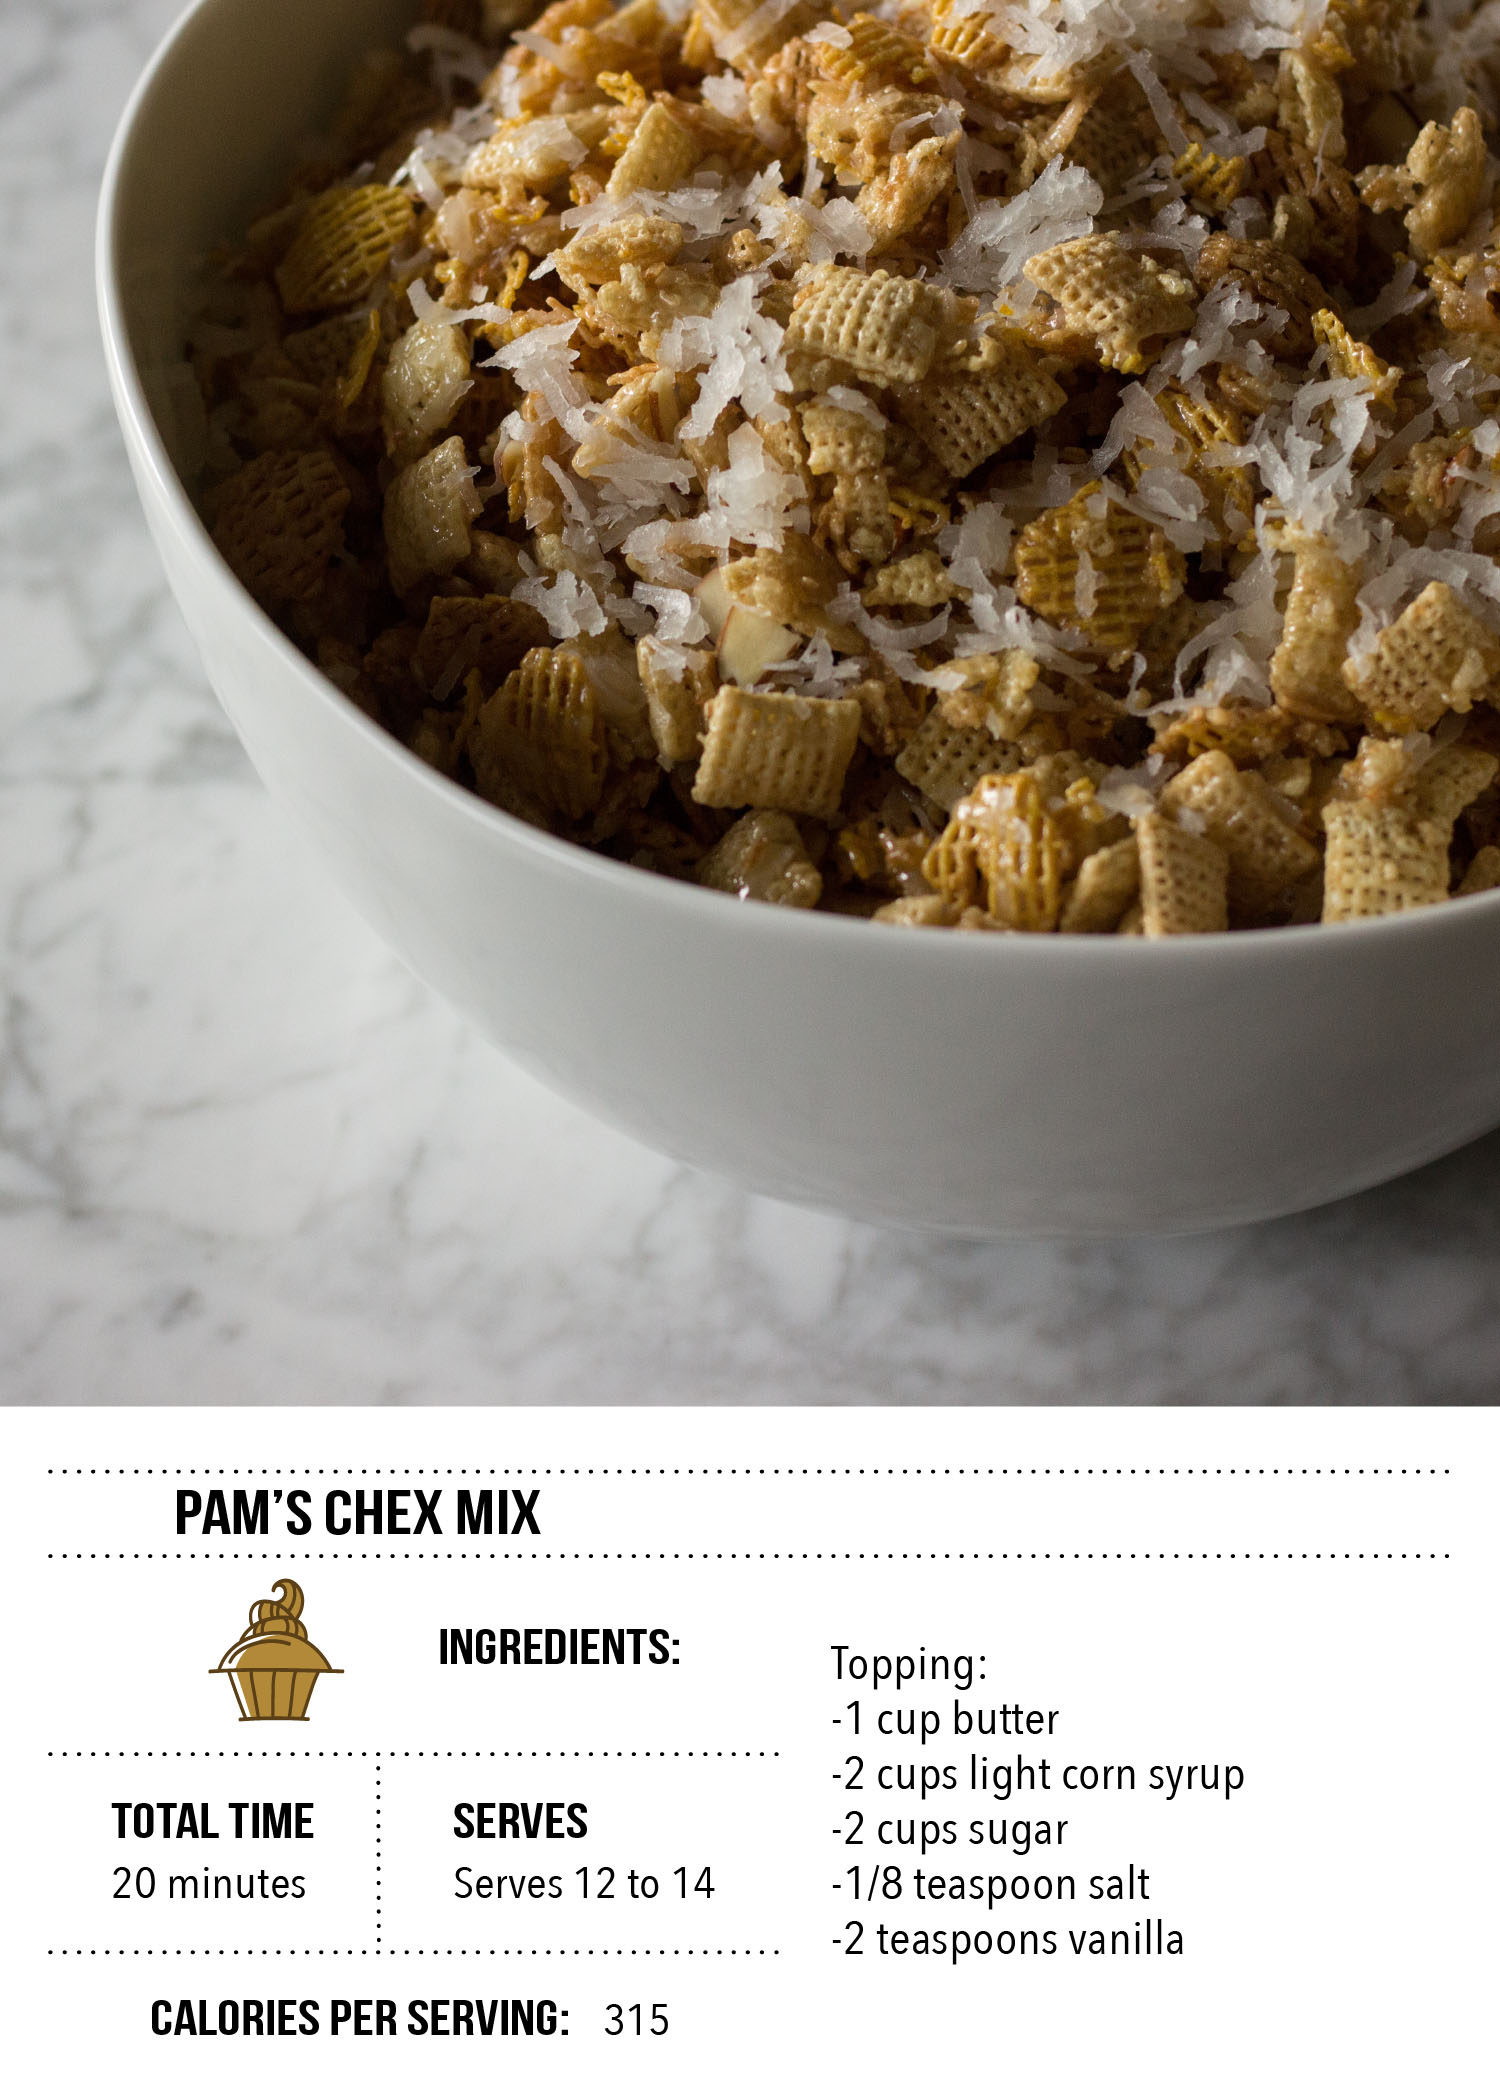 Pam's Chex Mix Recipe Card